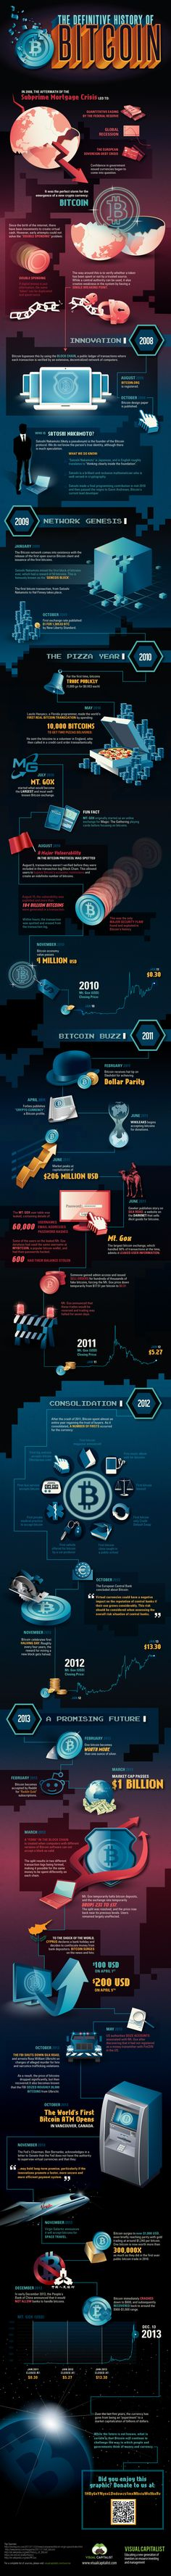 The defininive history pf Bitcoin #infographic